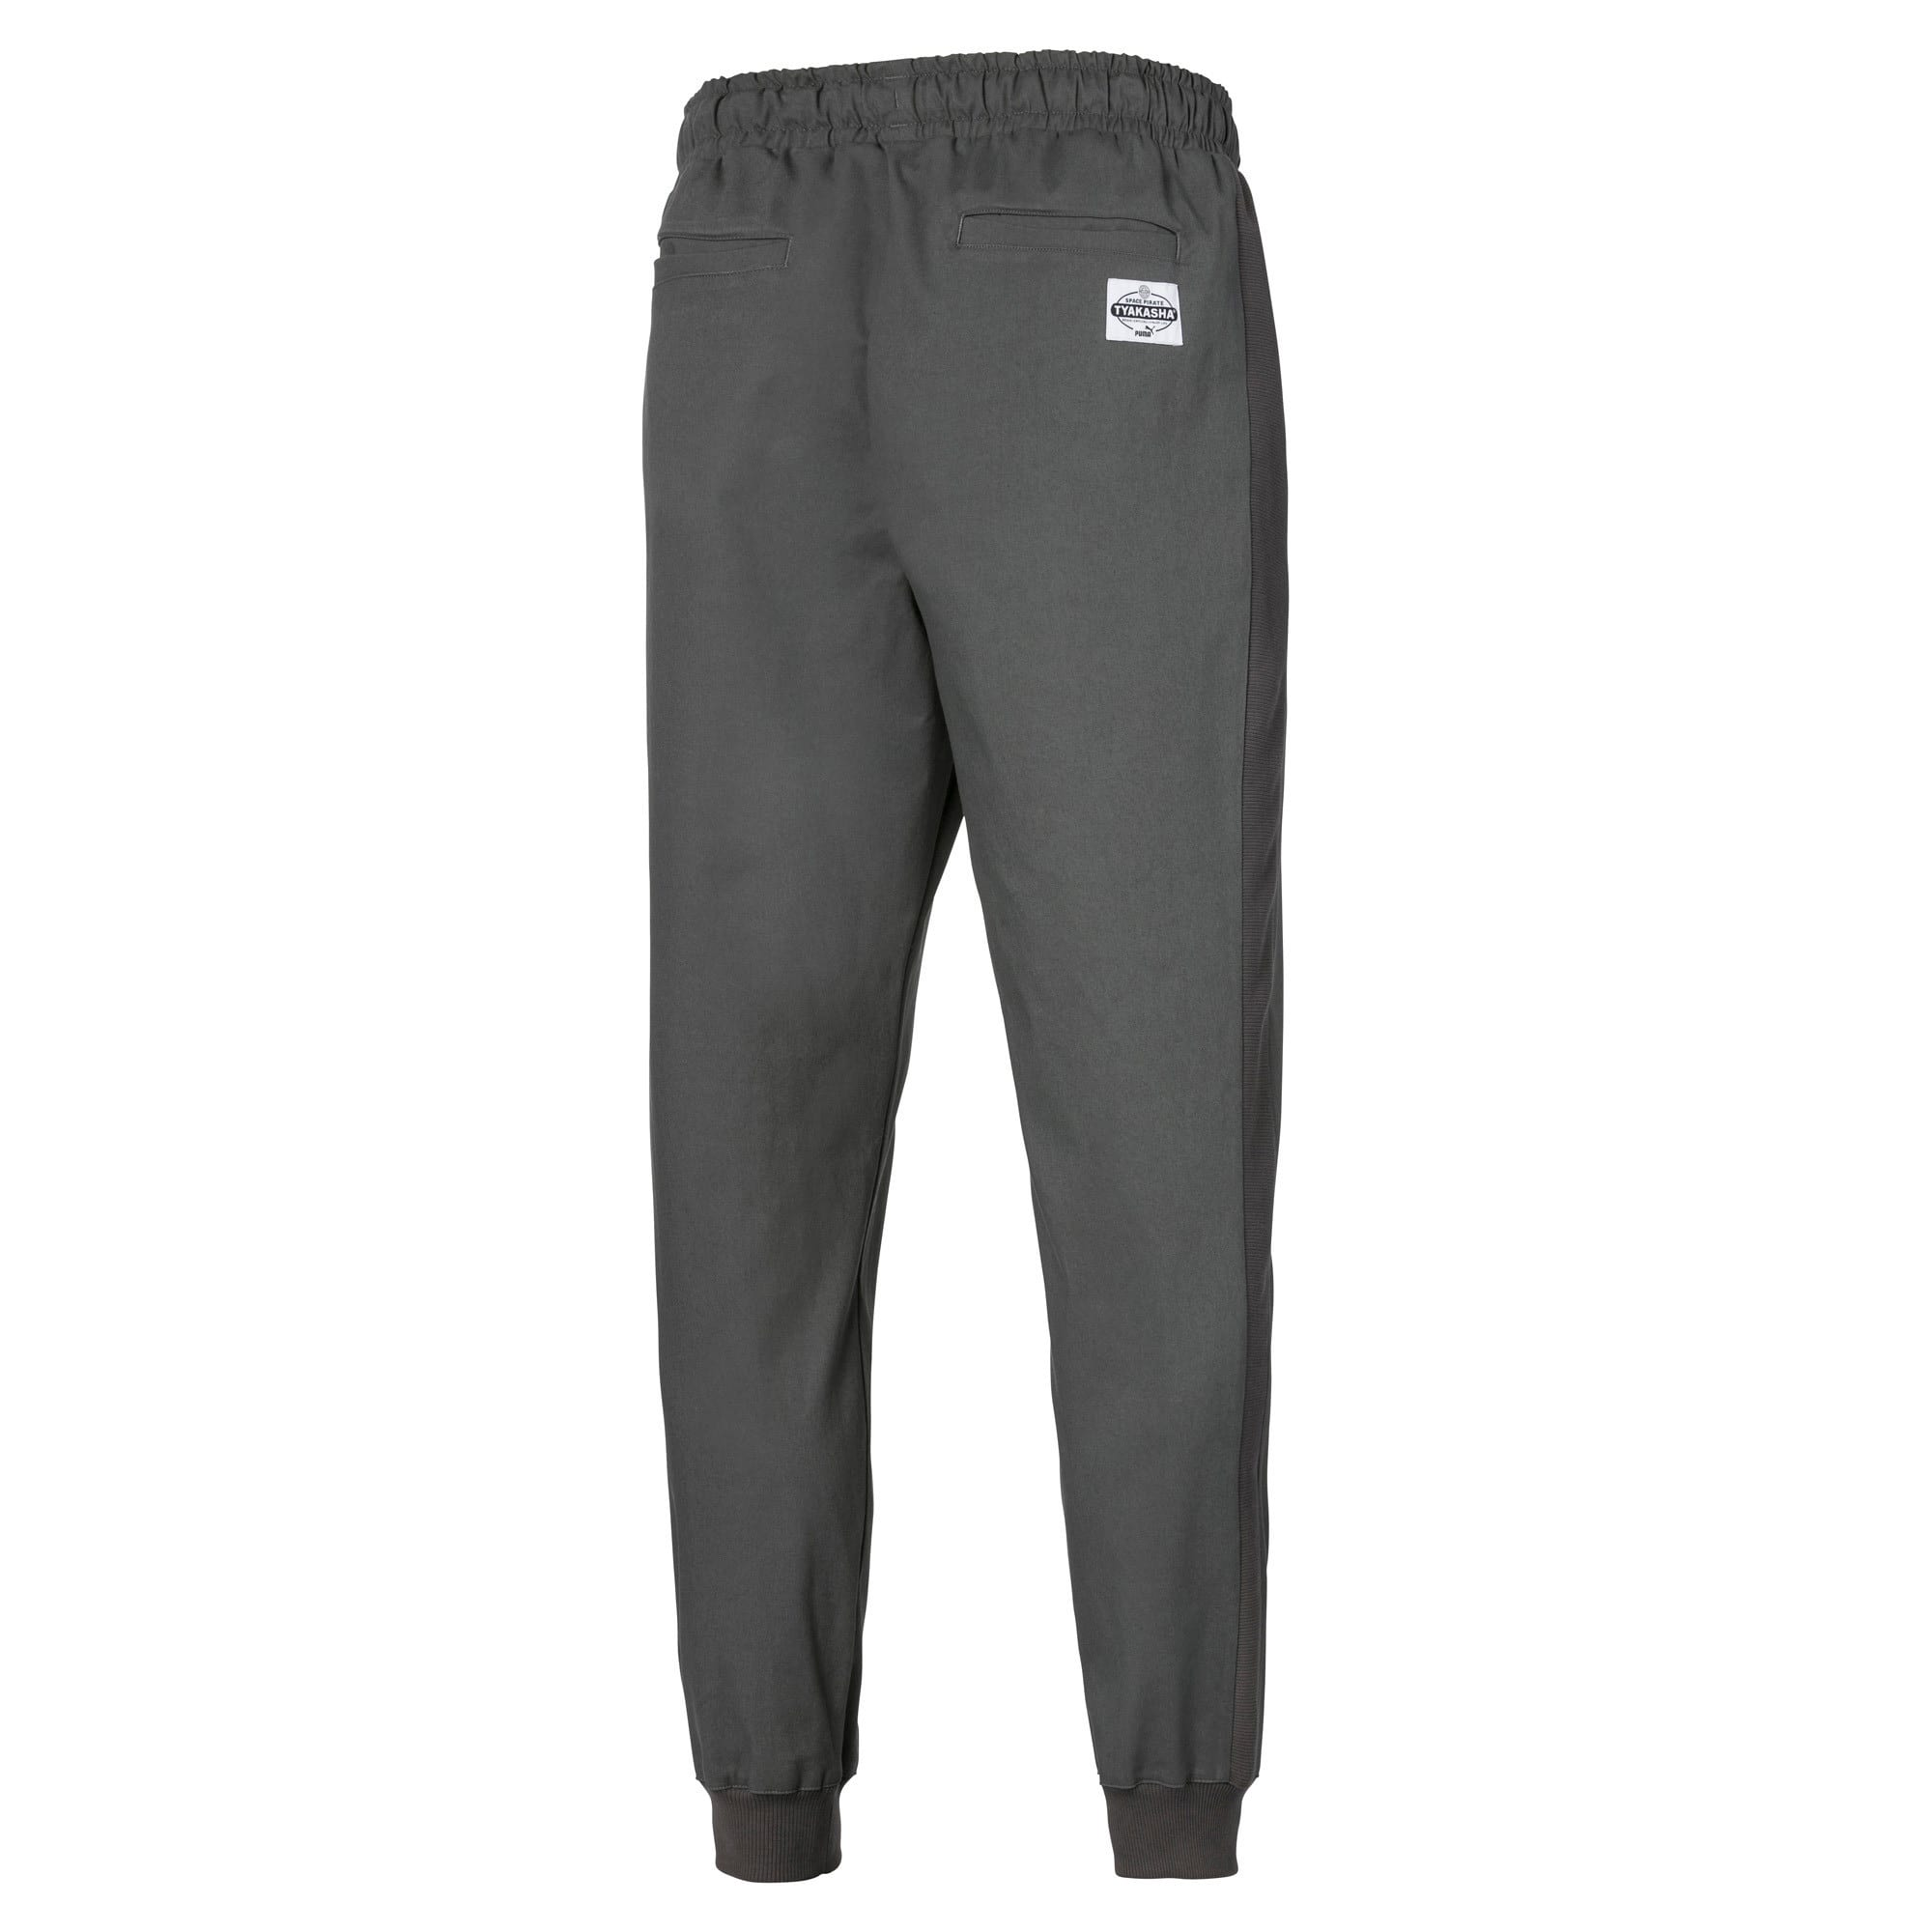 Thumbnail 5 of PUMA x TYAKASHA Woven Men's Pants, CASTLEROCK, medium